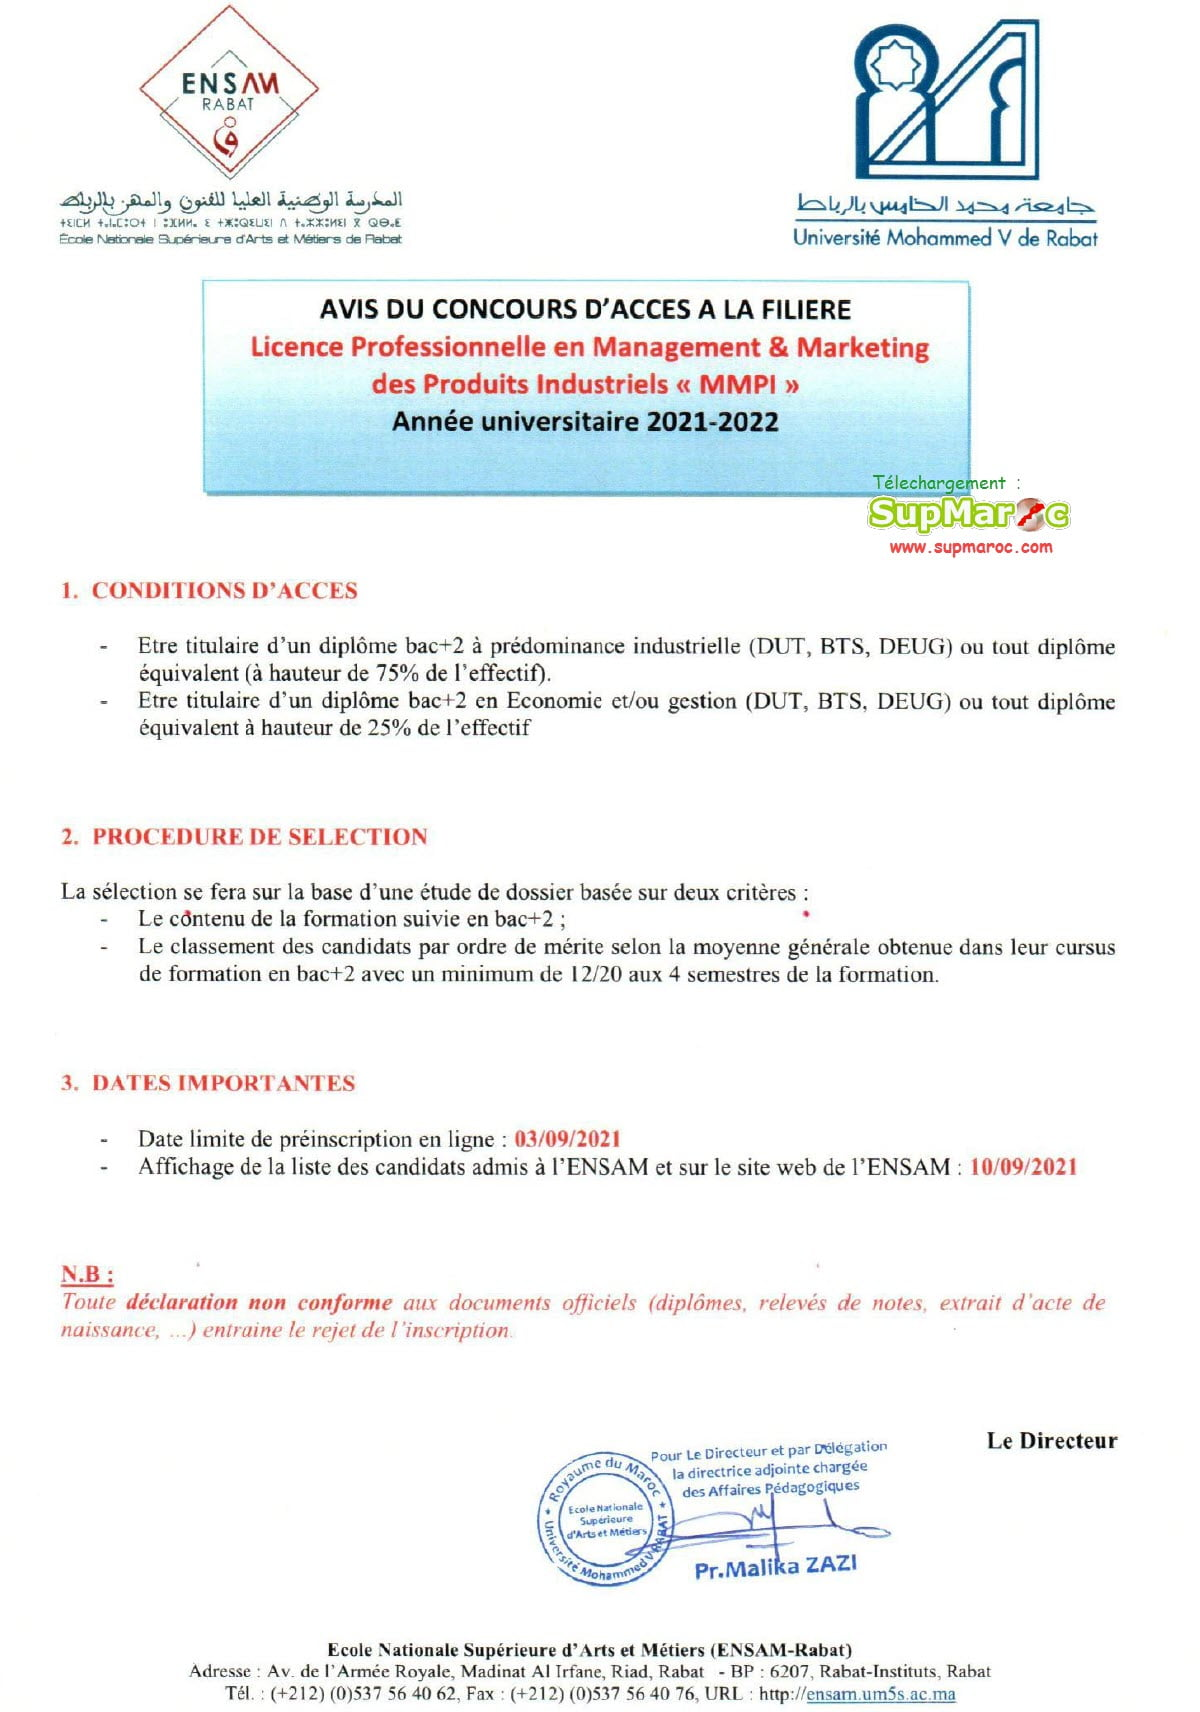 ENSAM Rabat concours Licence Prof  MMPI 2021 2022